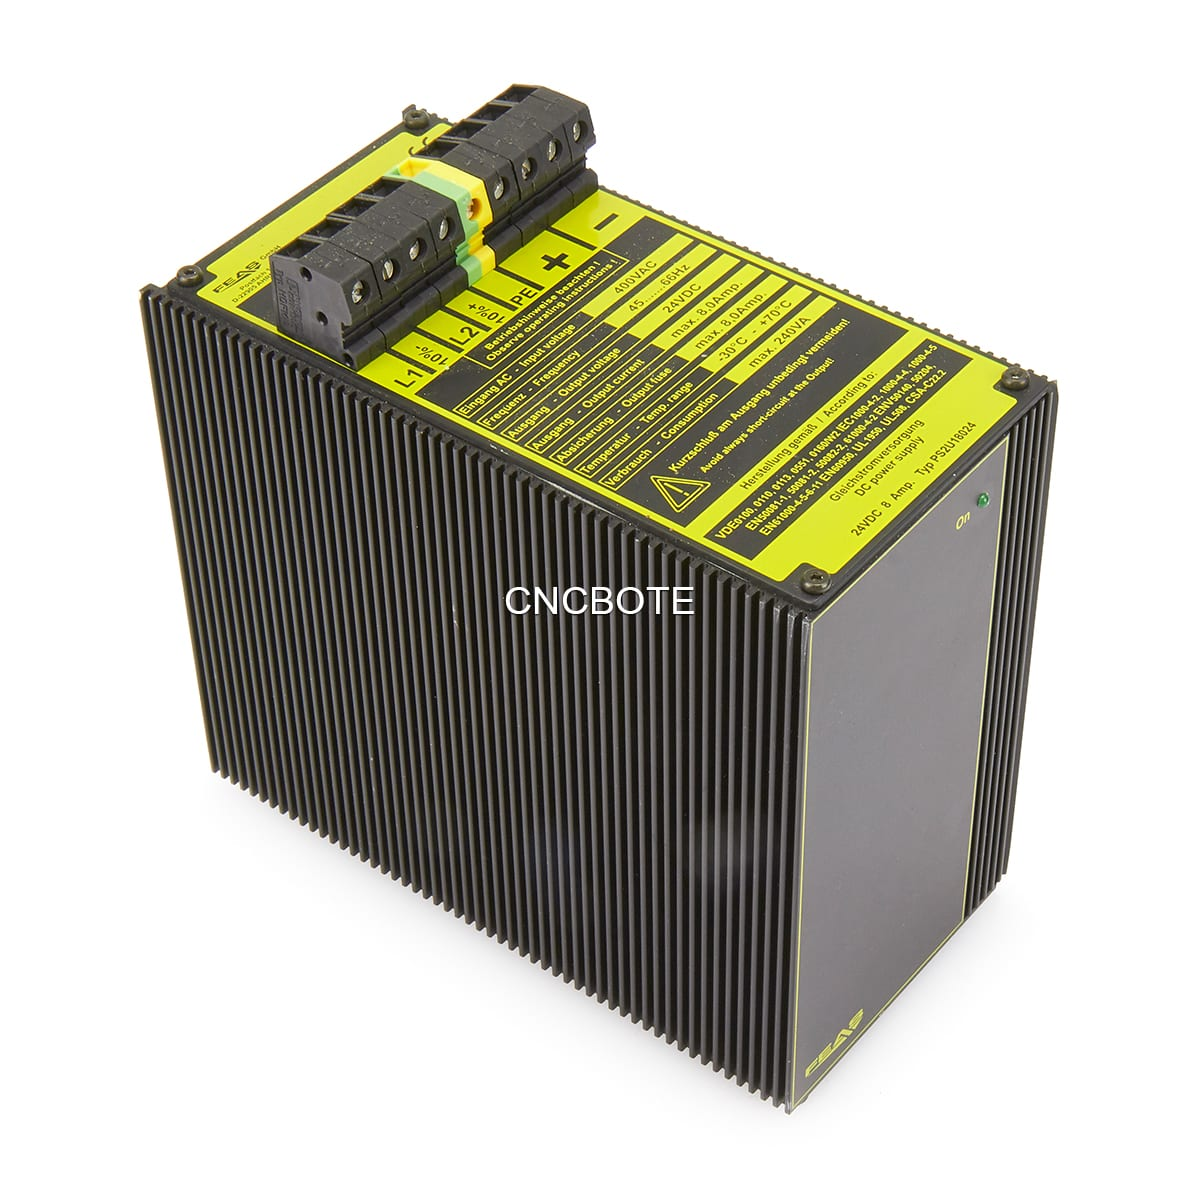 Feas Ps2u18024 24vdc 8 Amp Direct Current Dc Power Supply Cnc Bote The From A Battery Is